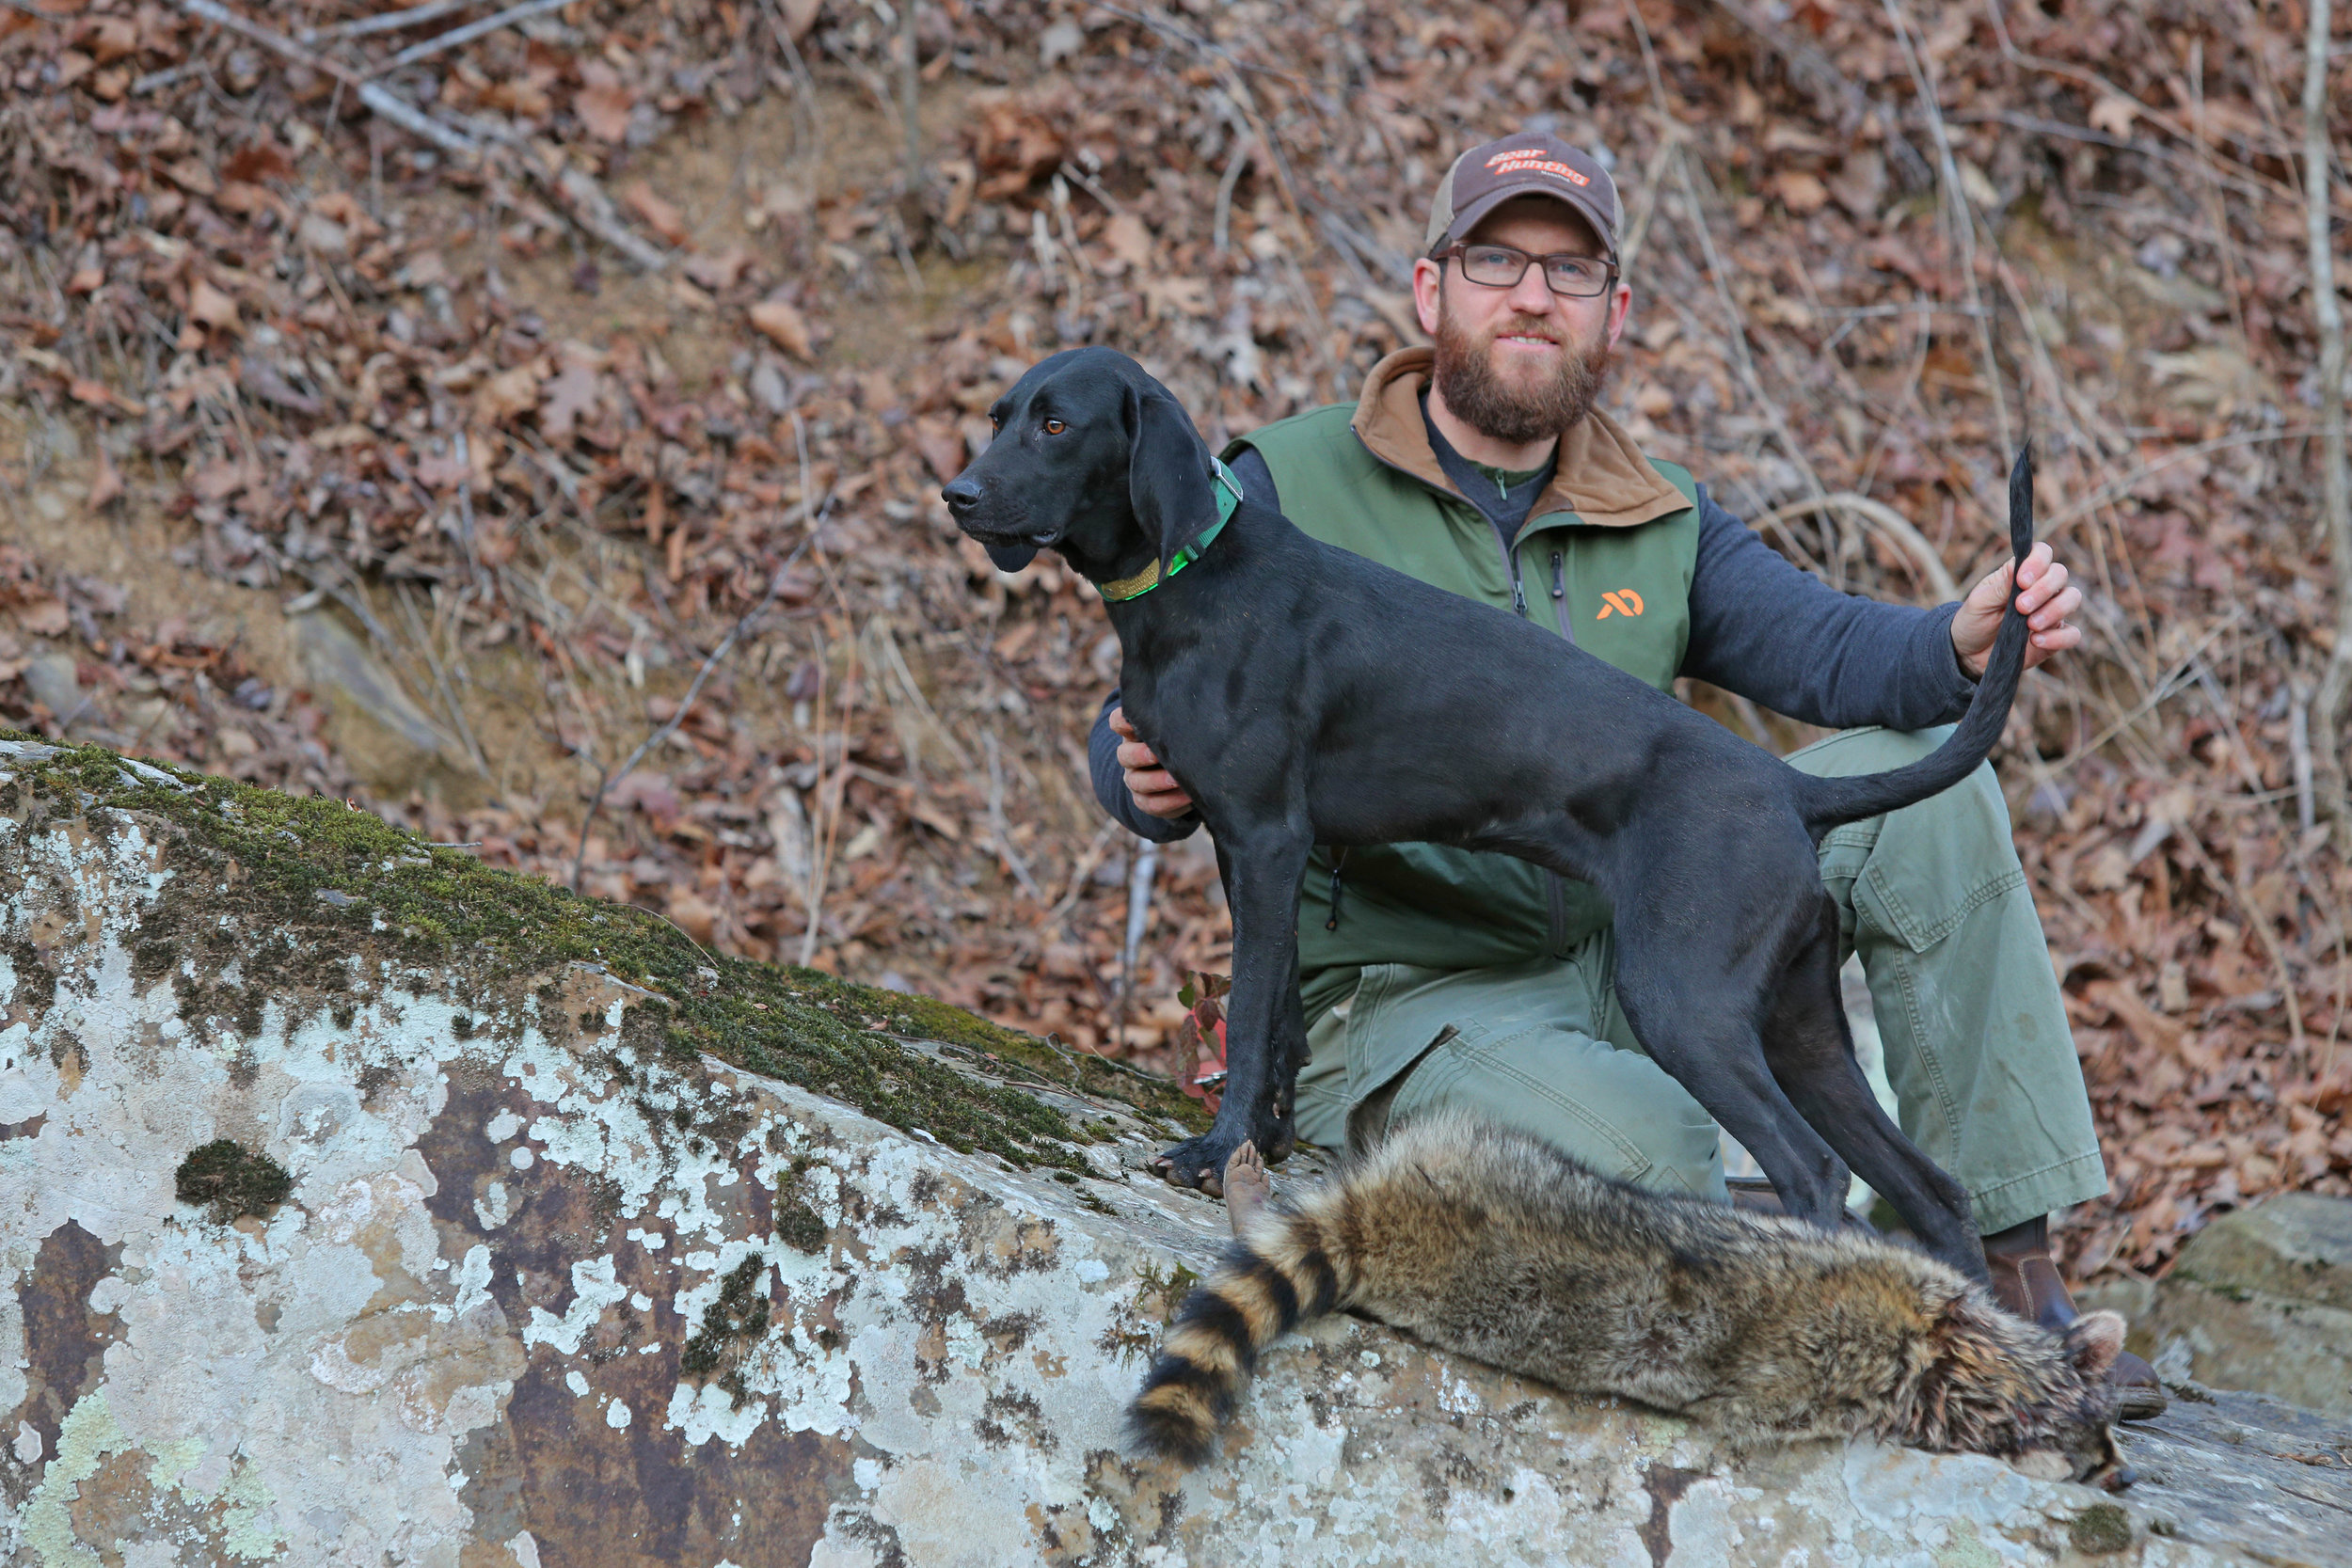 Author and avid hunter Clay Newcomb poses with his coonhound, Fern, and a freshly harvested Arkansas raccoon.